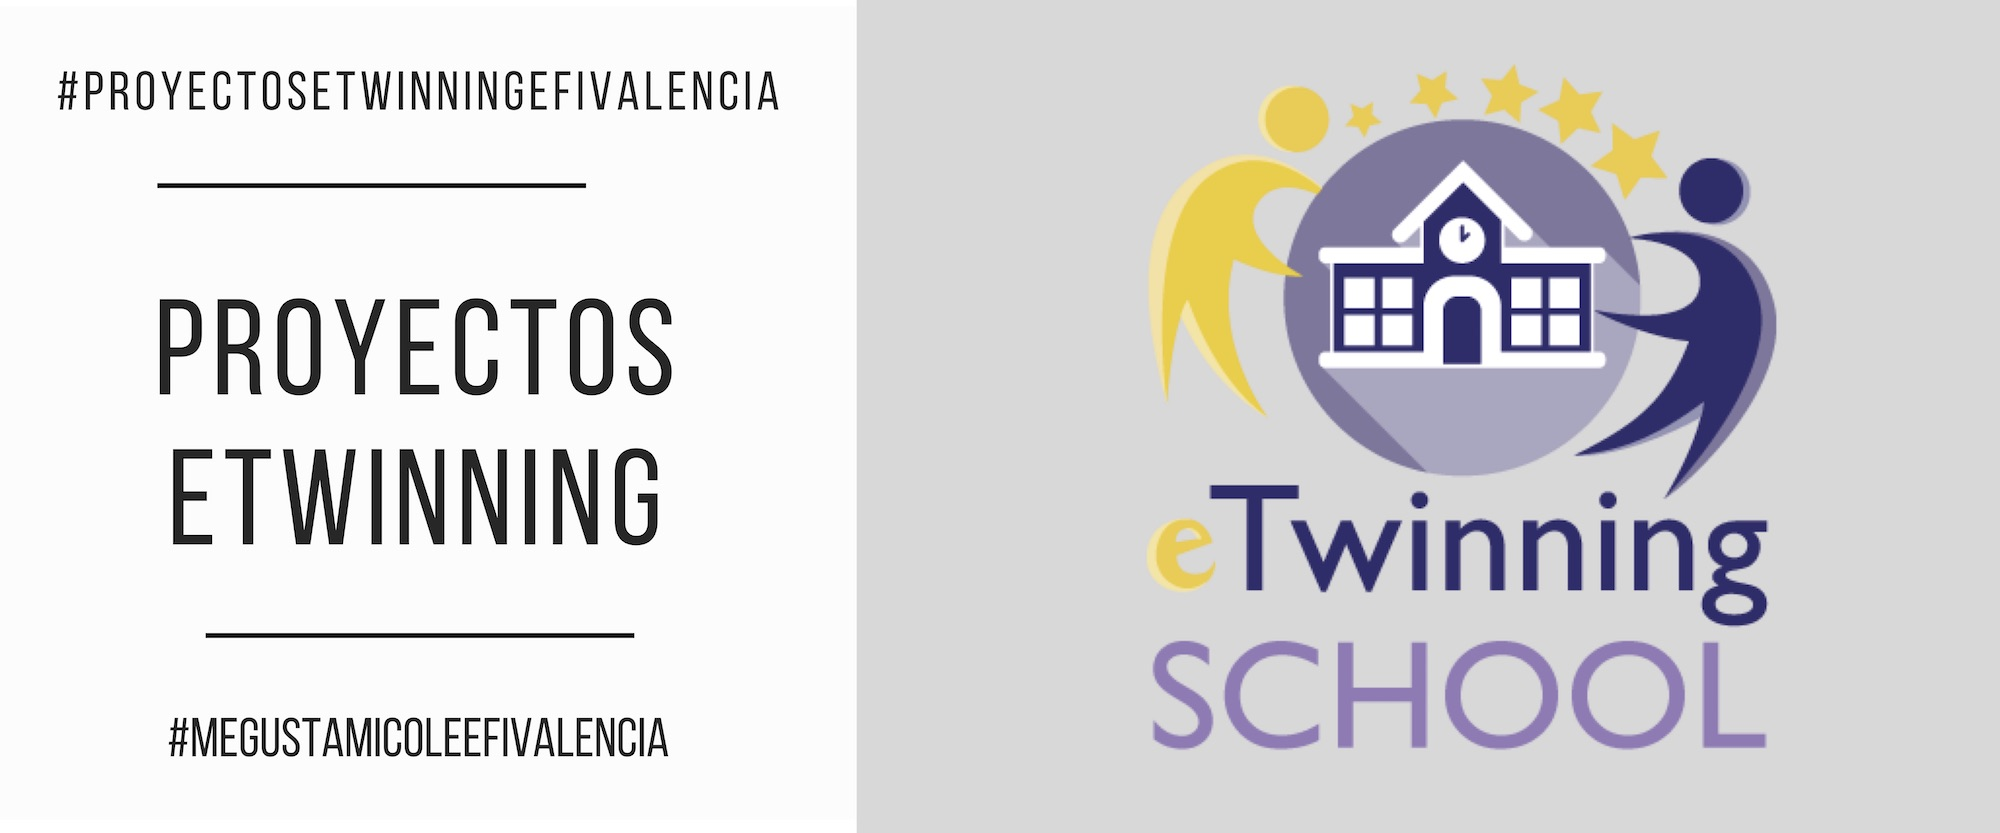 proyectos etwinning ancho